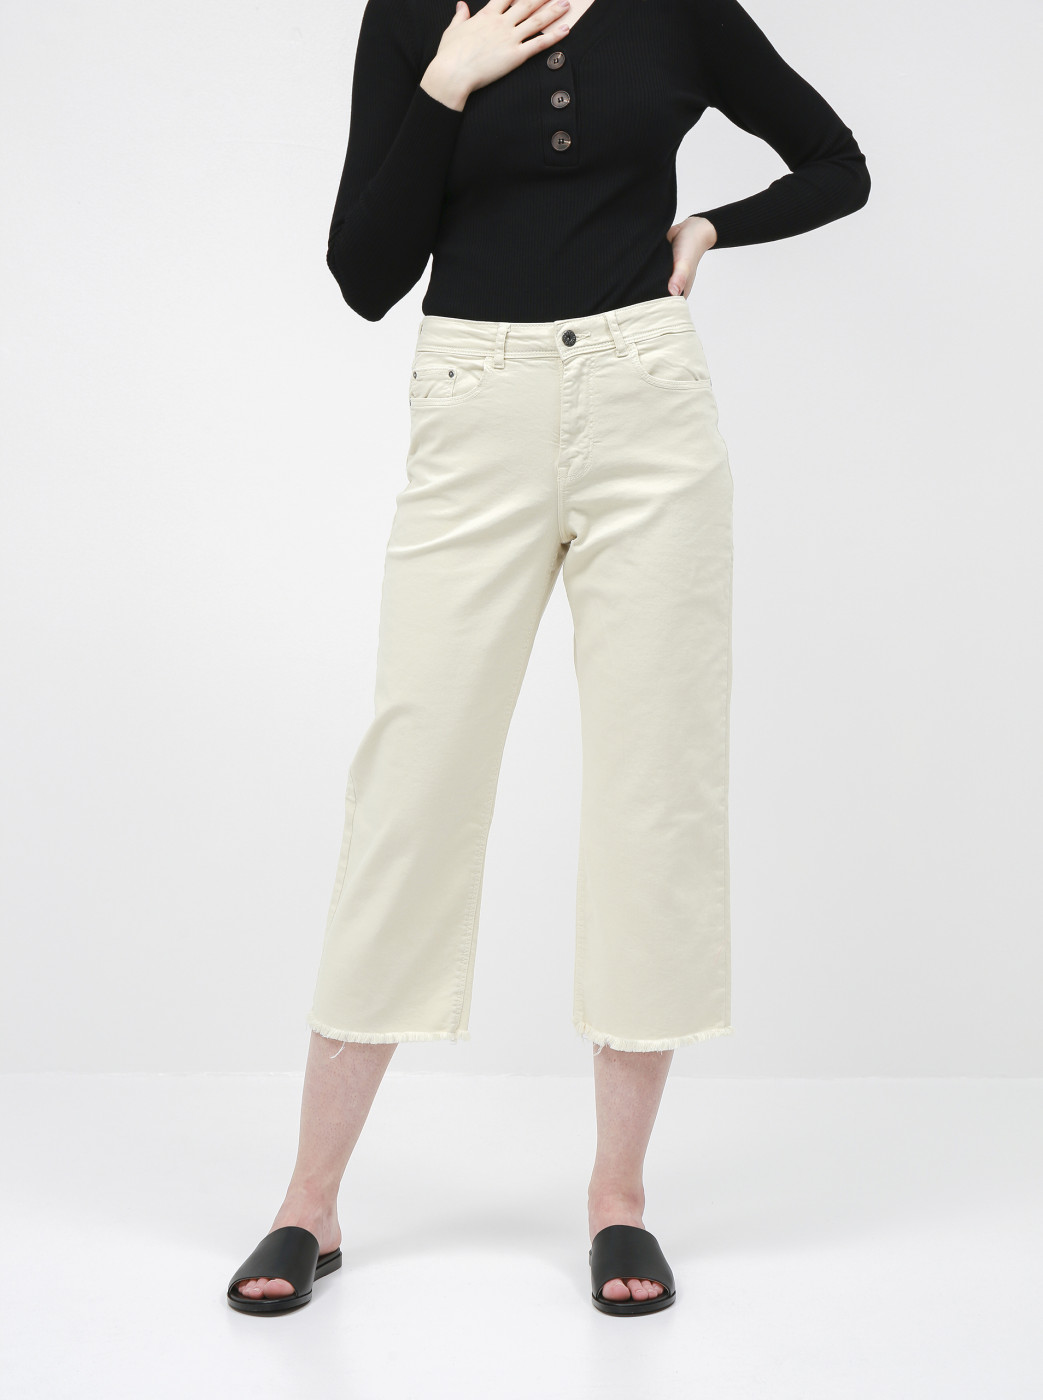 Creamy shortened straight fit jeans Jacqueline de Yong Tonia